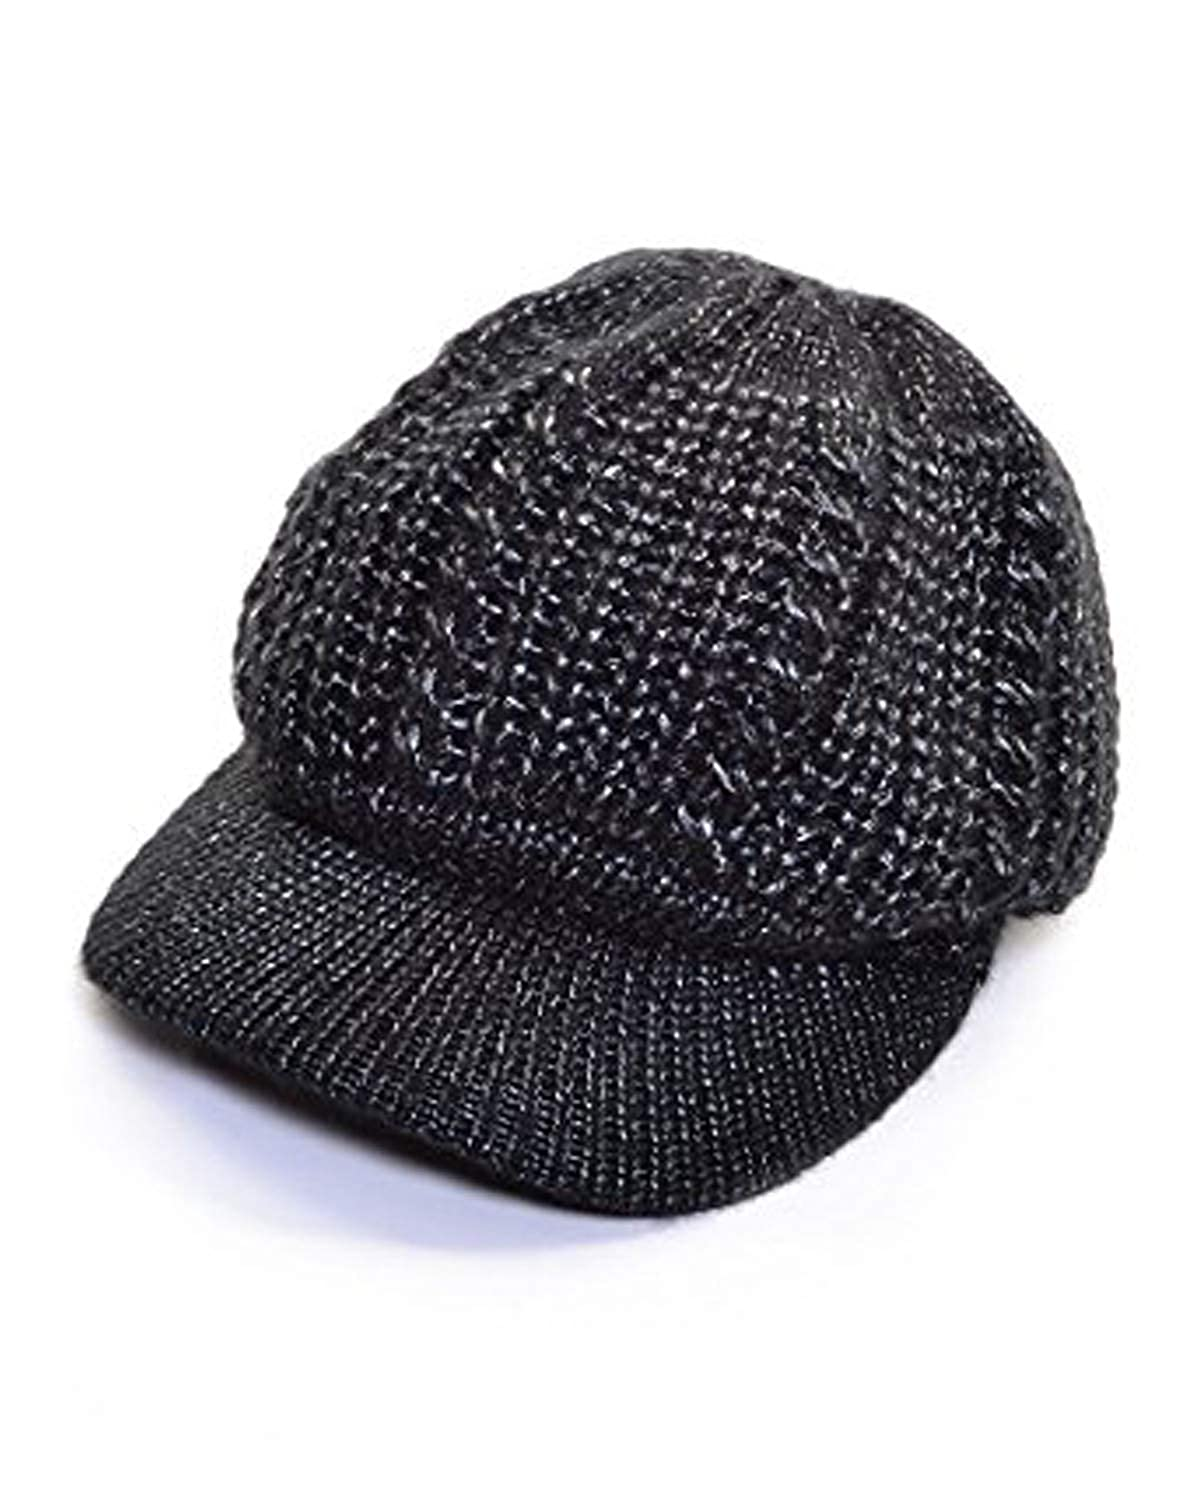 8803d7822 an Beanie Cap Metallic Chunky Knit Newsboy Hat Brim Lined Beret Visor Winter